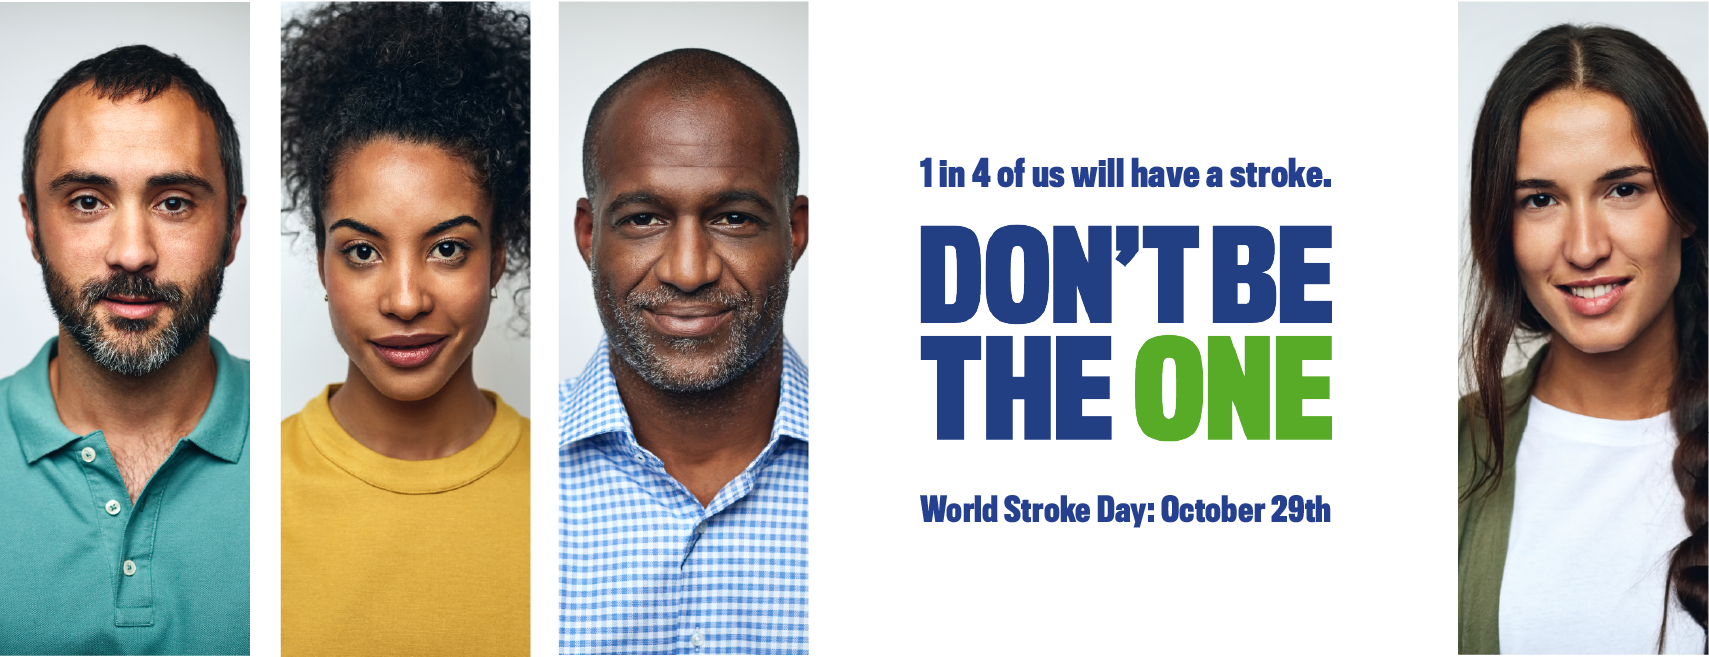 World Stroke Day Facebook